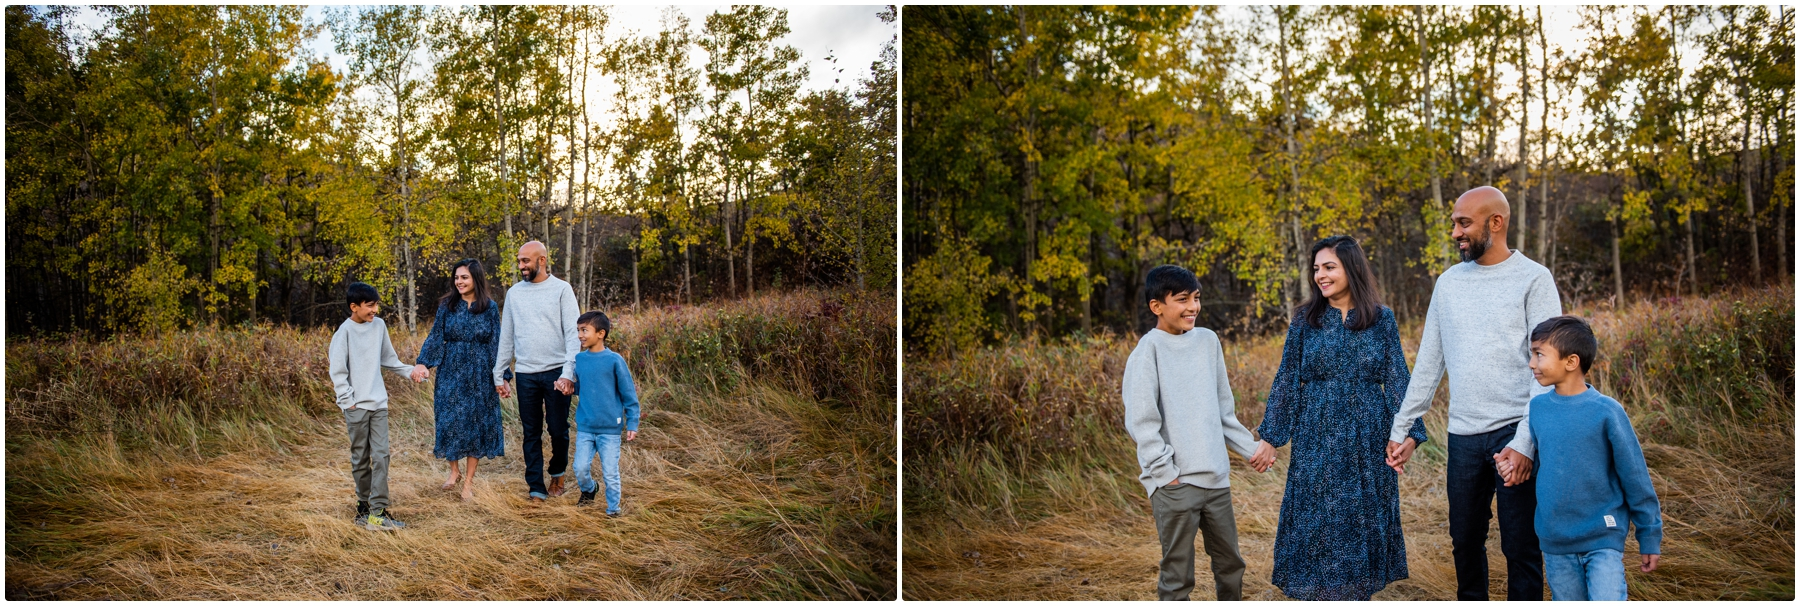 Fall Family Photos- Calgary Edworthy Park